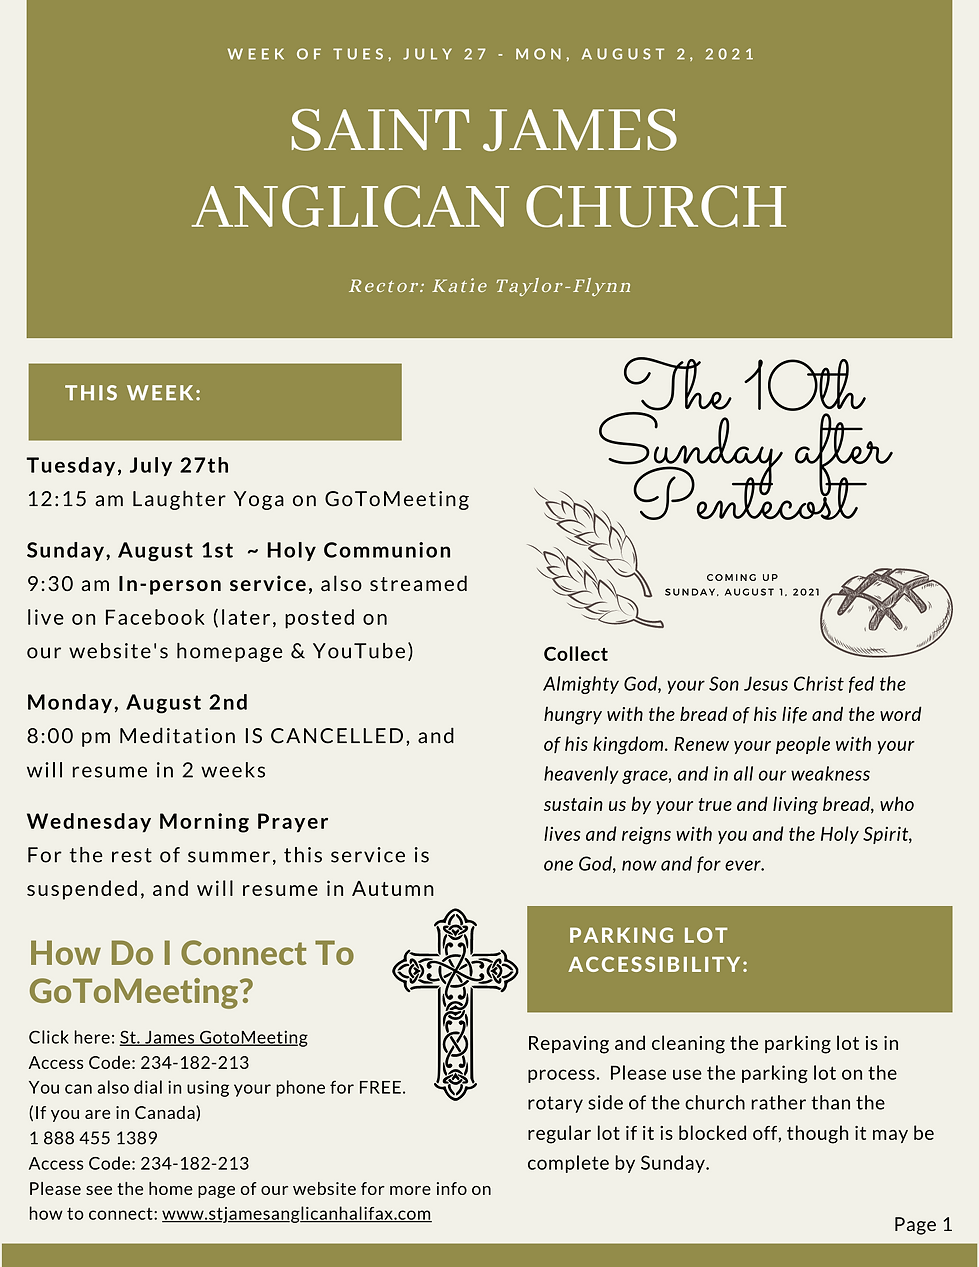 St J Newsletter July 27-Aug 2 p1.png